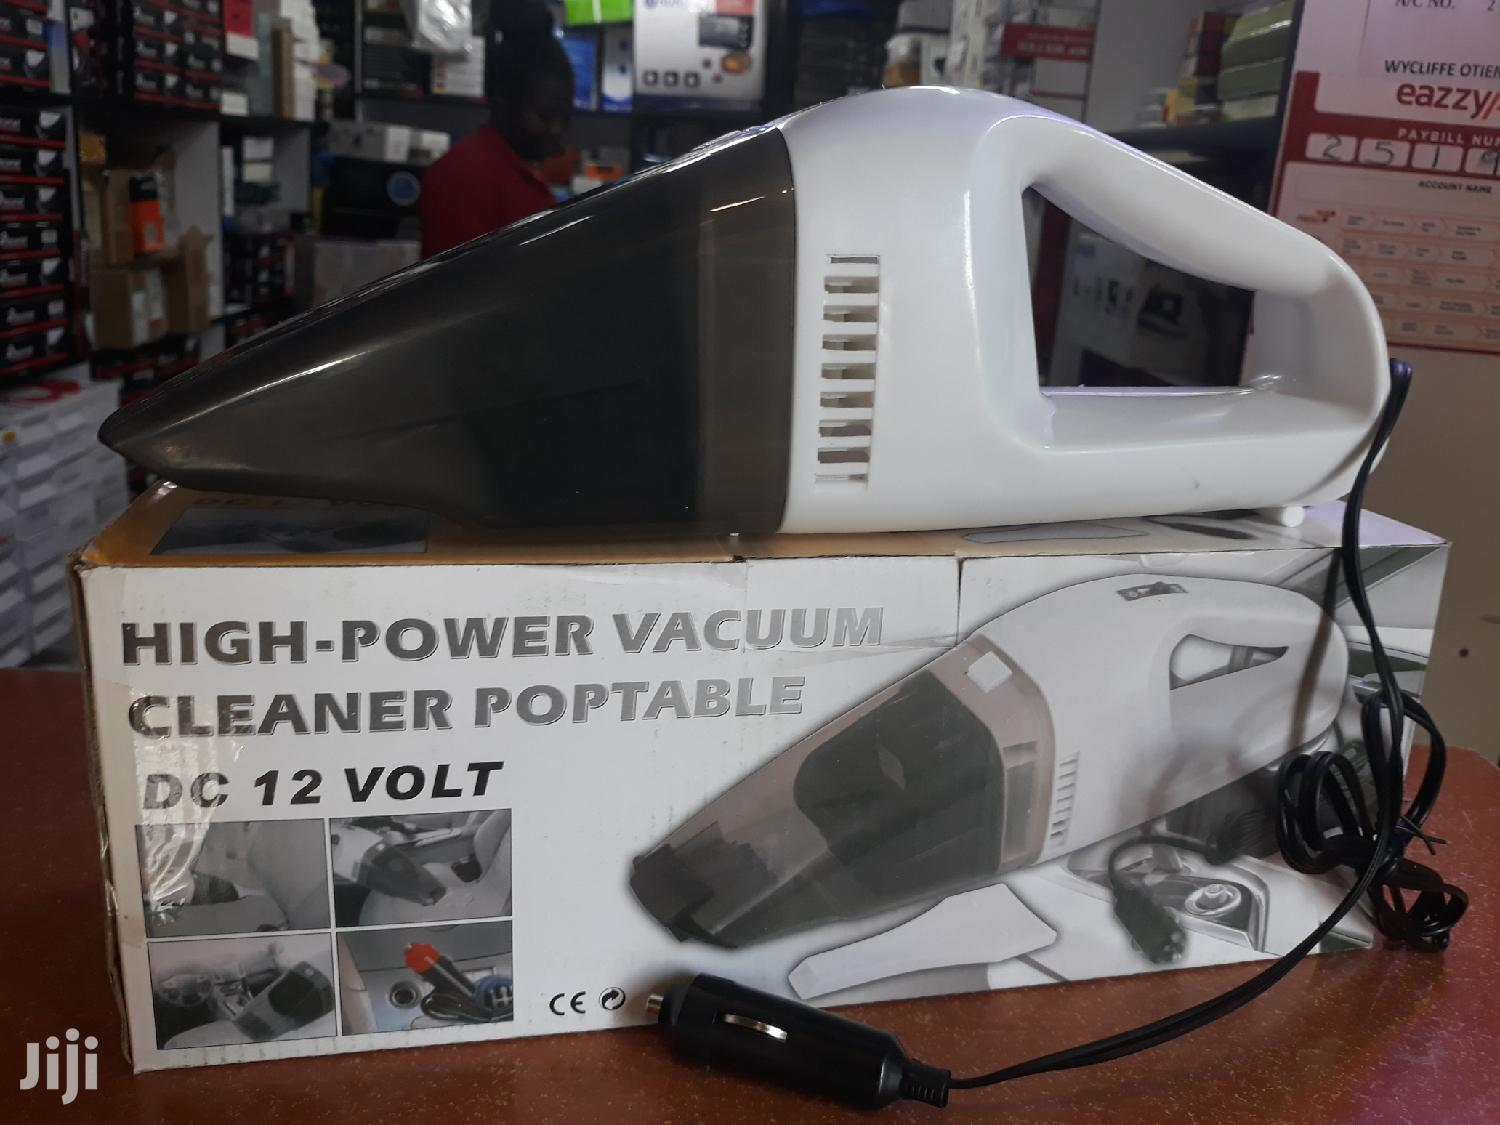 High Power Car Vacuum Cleaner 12v | Vehicle Parts & Accessories for sale in Nairobi Central, Nairobi, Kenya